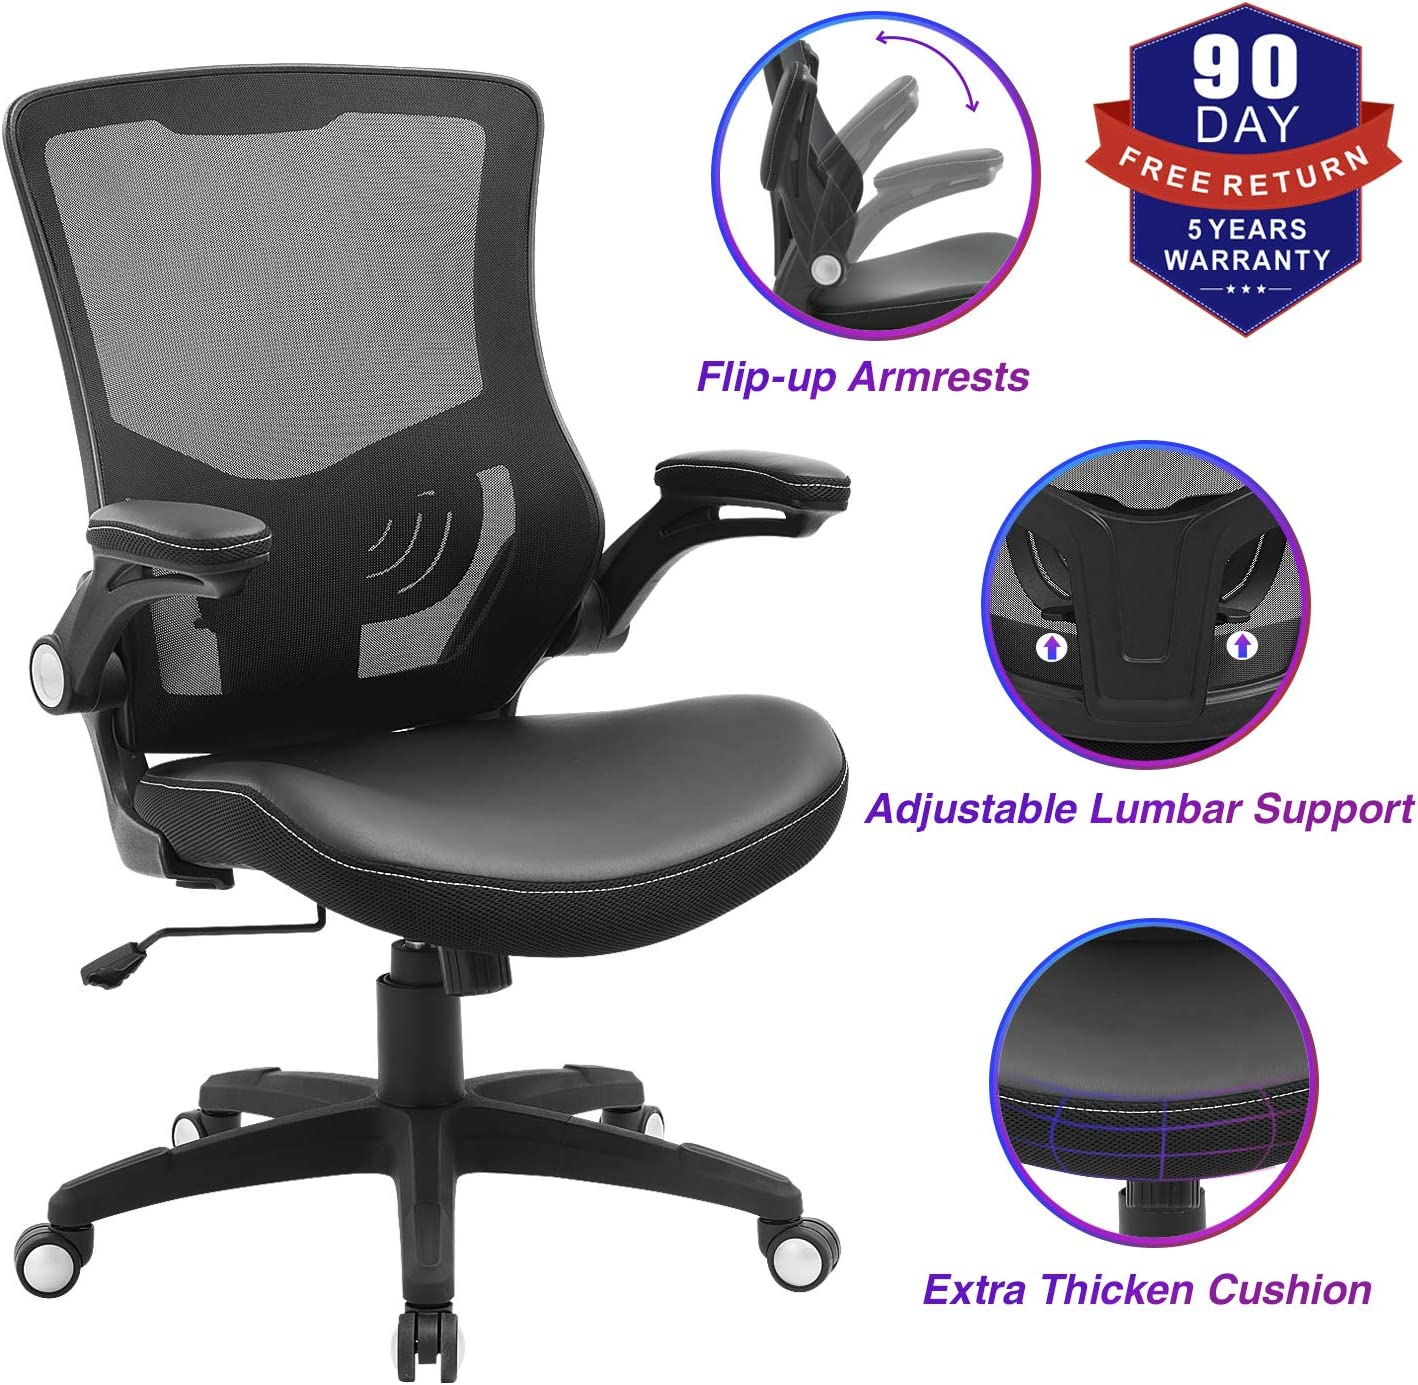 Office Chair Ergonomic Swivel Mesh Mid-Back Computer Desk Chair with Flip-up Arms, Black 300lb